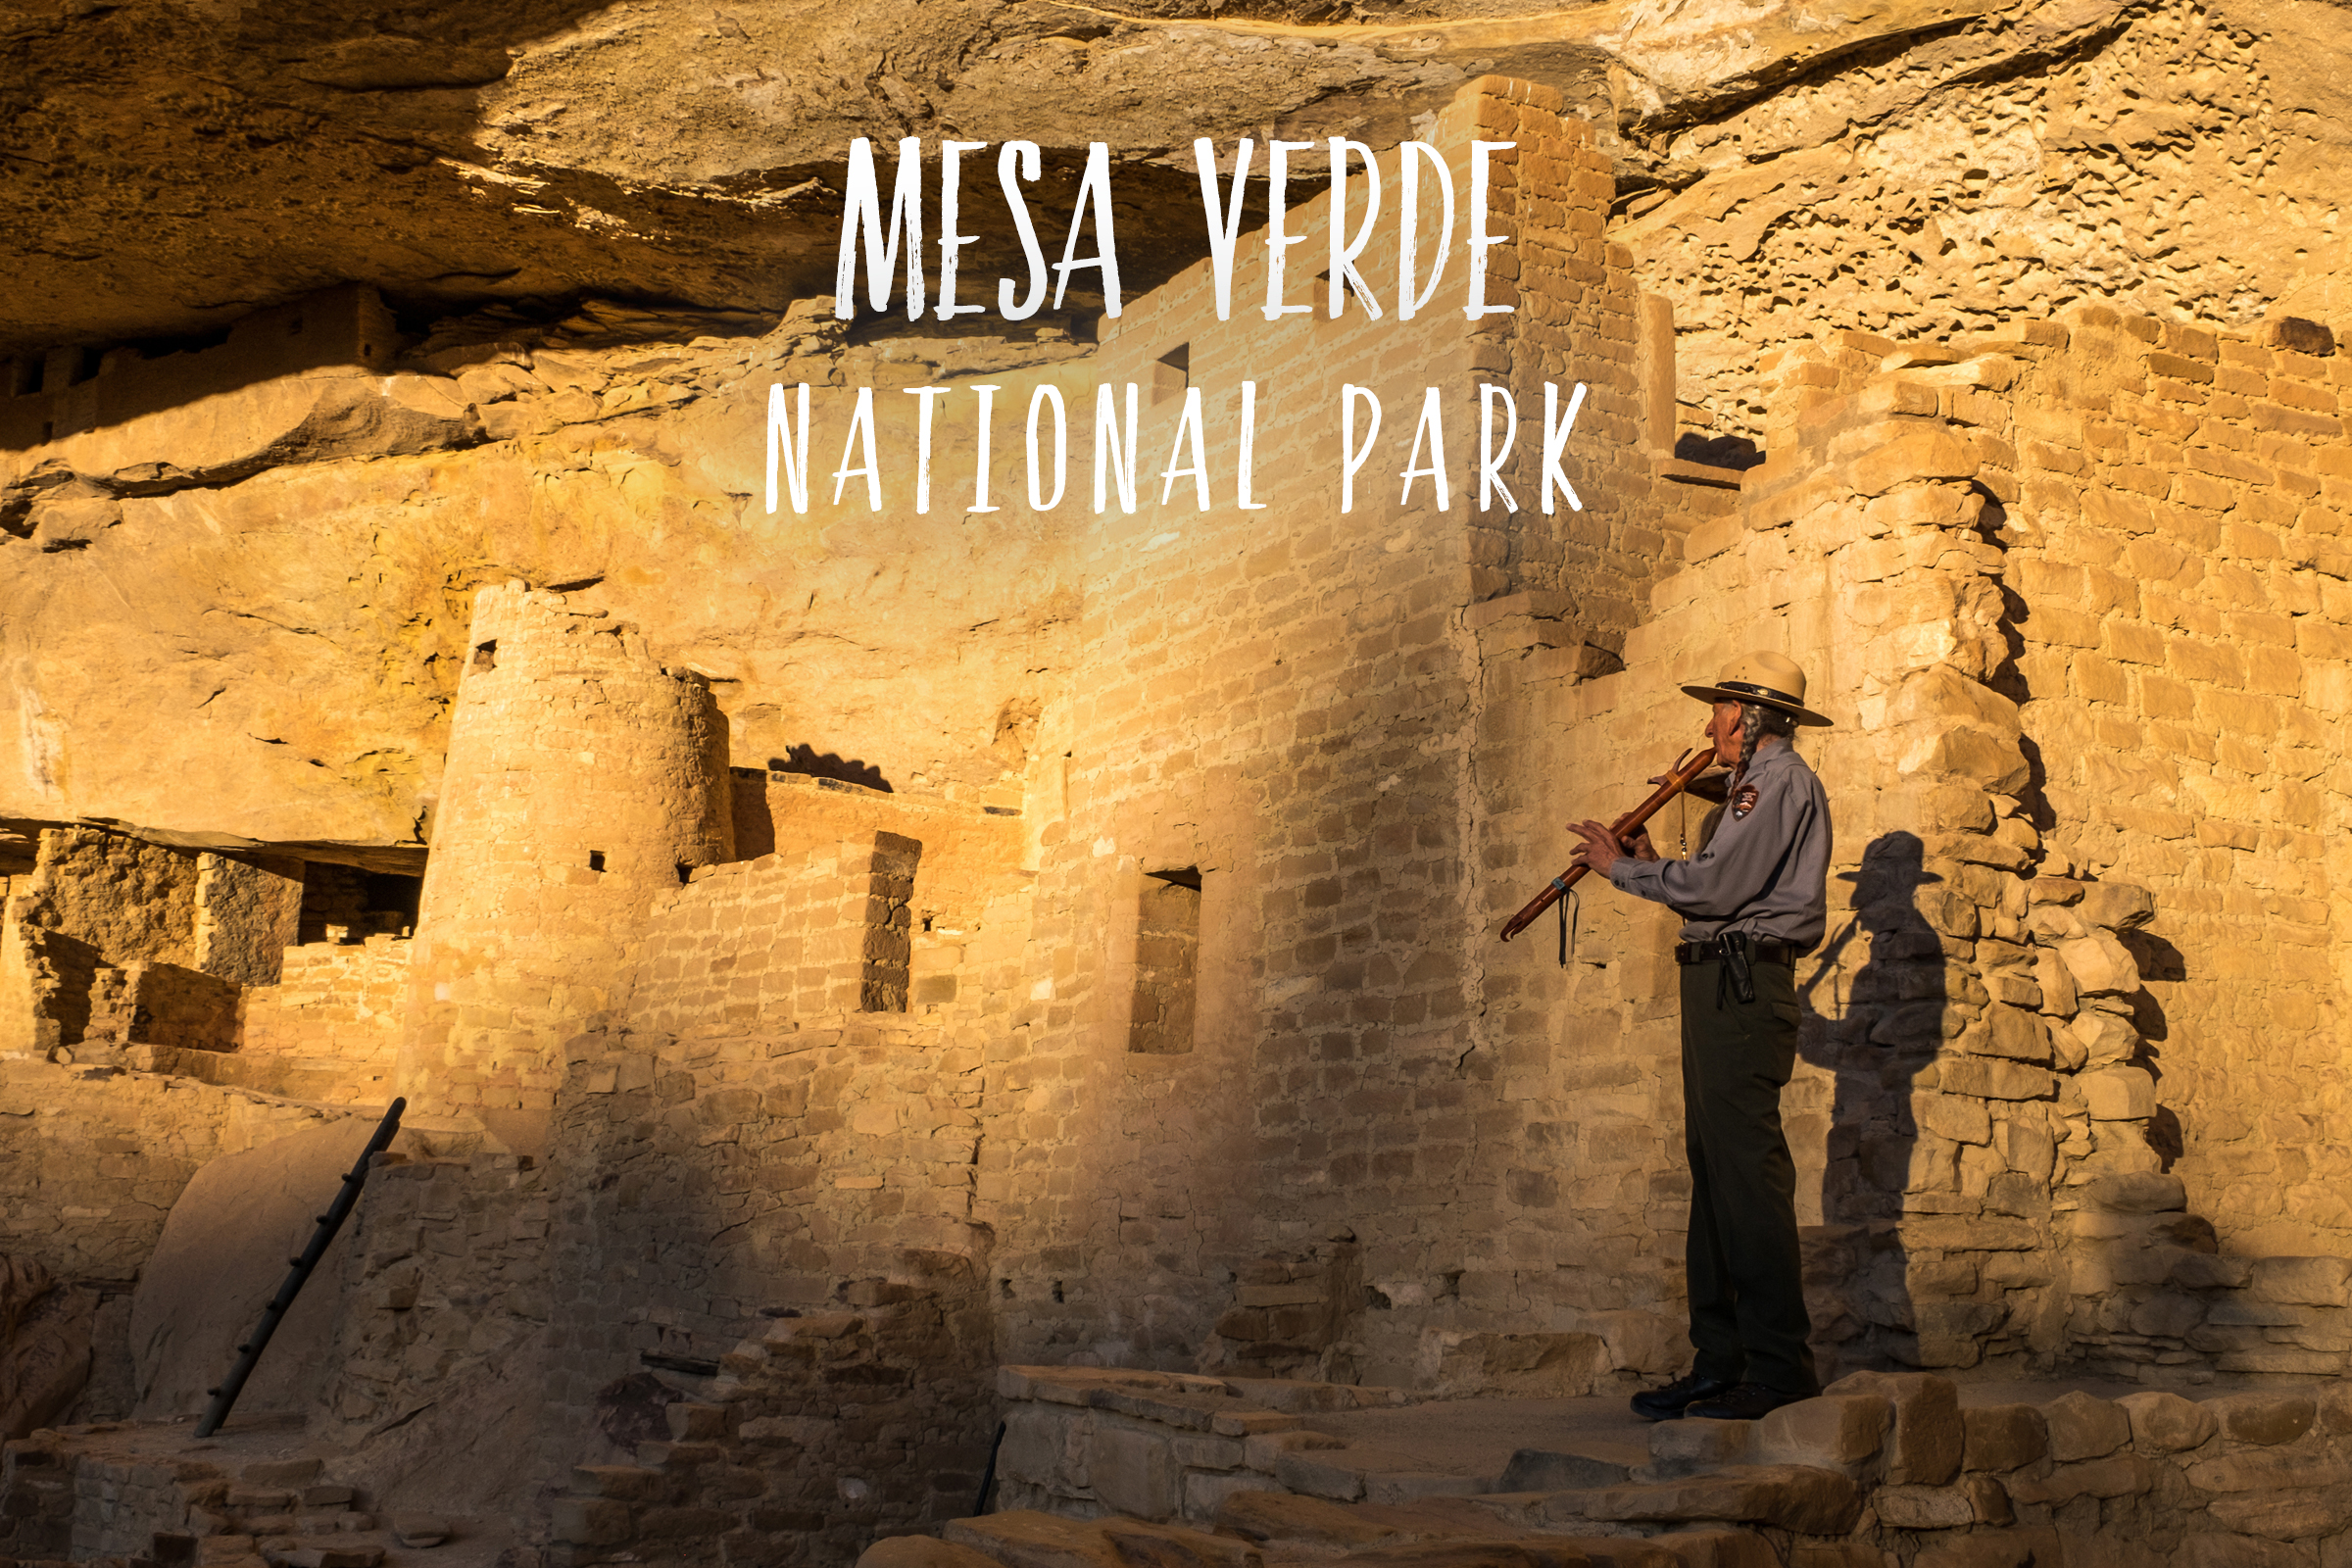 Park 48/59: Mesa Verde National Park in Colorado